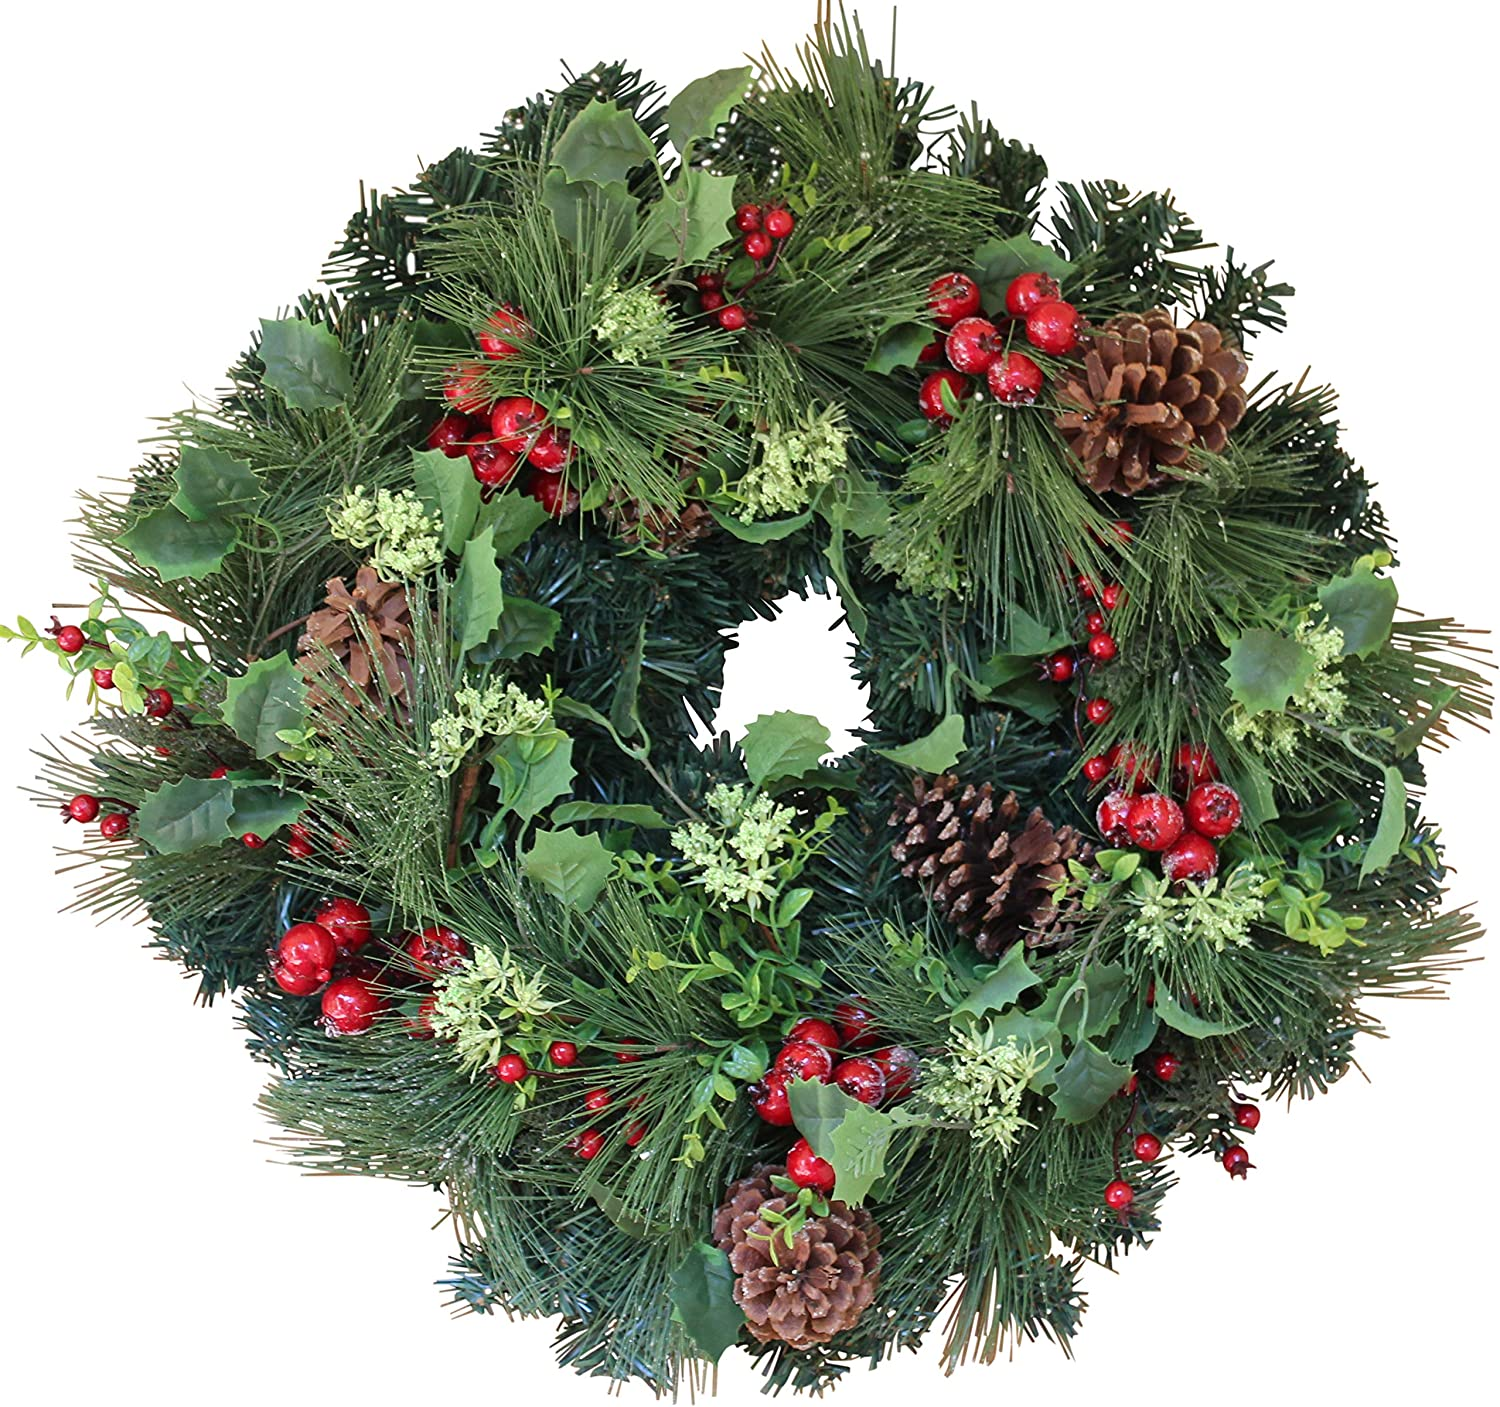 The Wreath Depot Aurora Winter Wreath, 22 Inches, Designer Full Winter Wreath Enhances Front Door Decor, White Gift Box Included